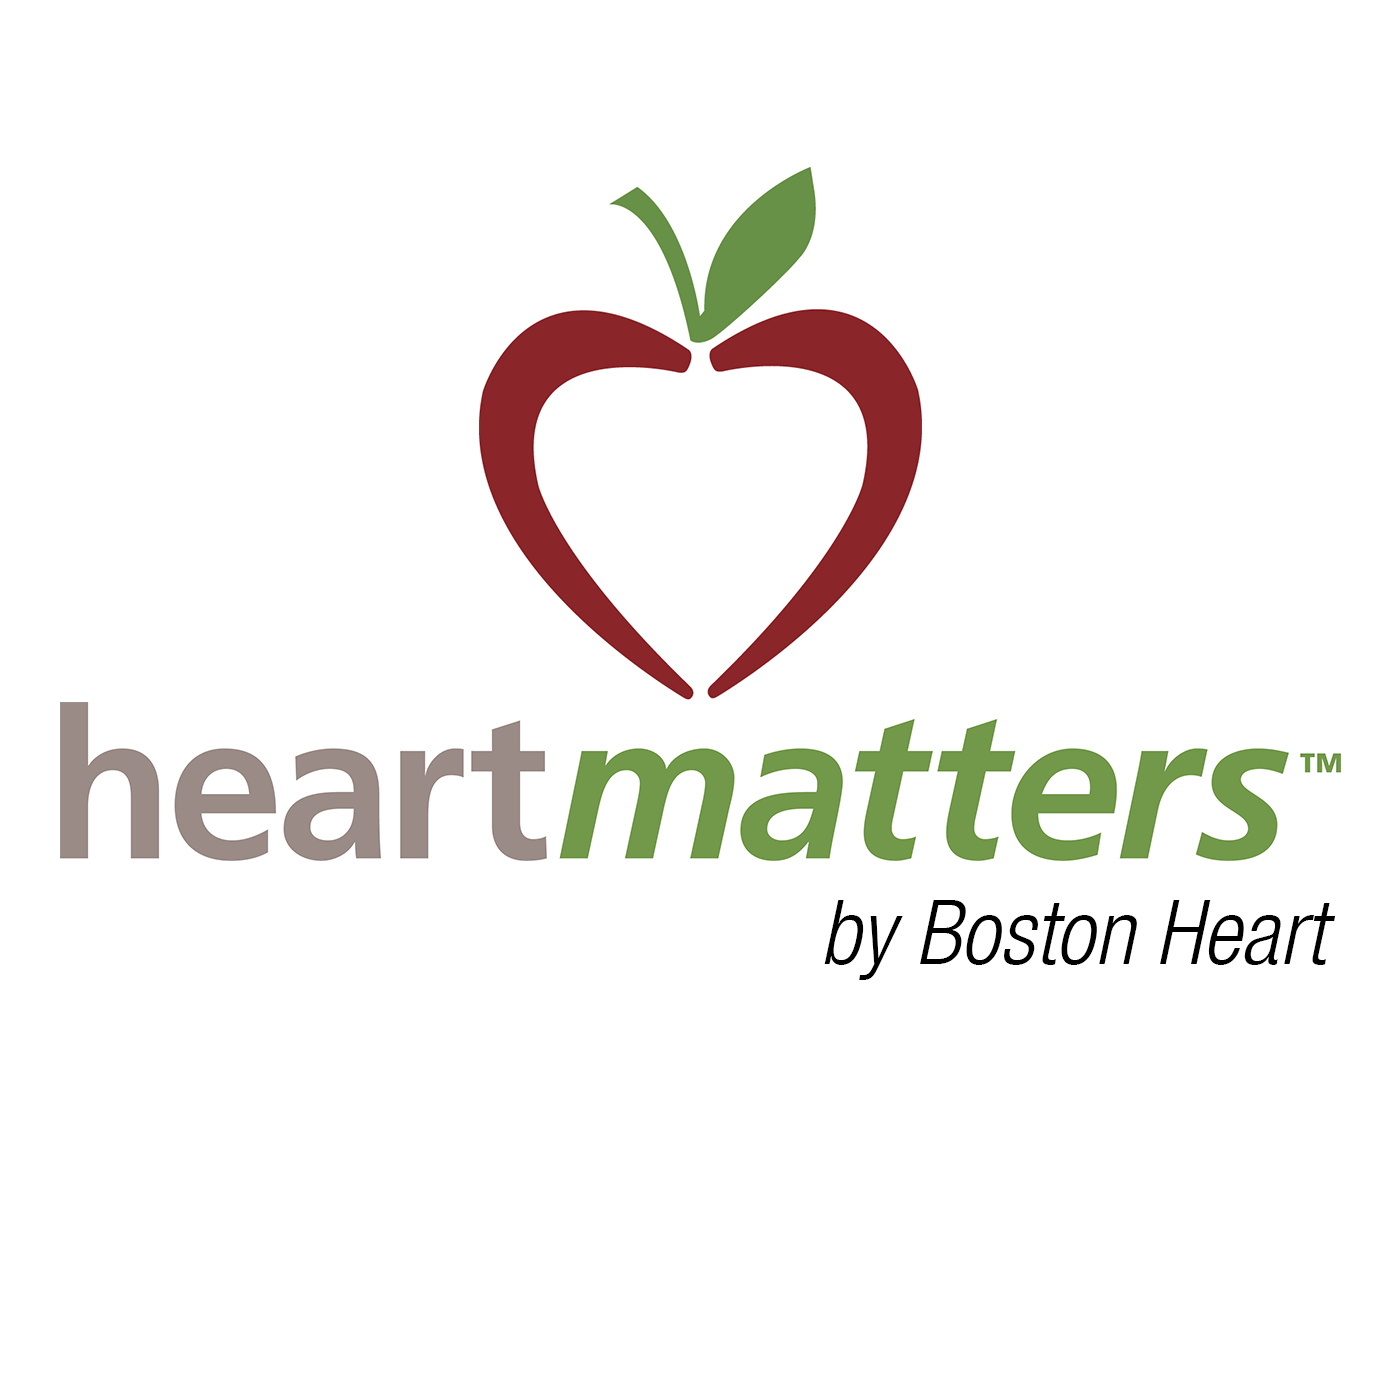 heartmatters by Boston Heart